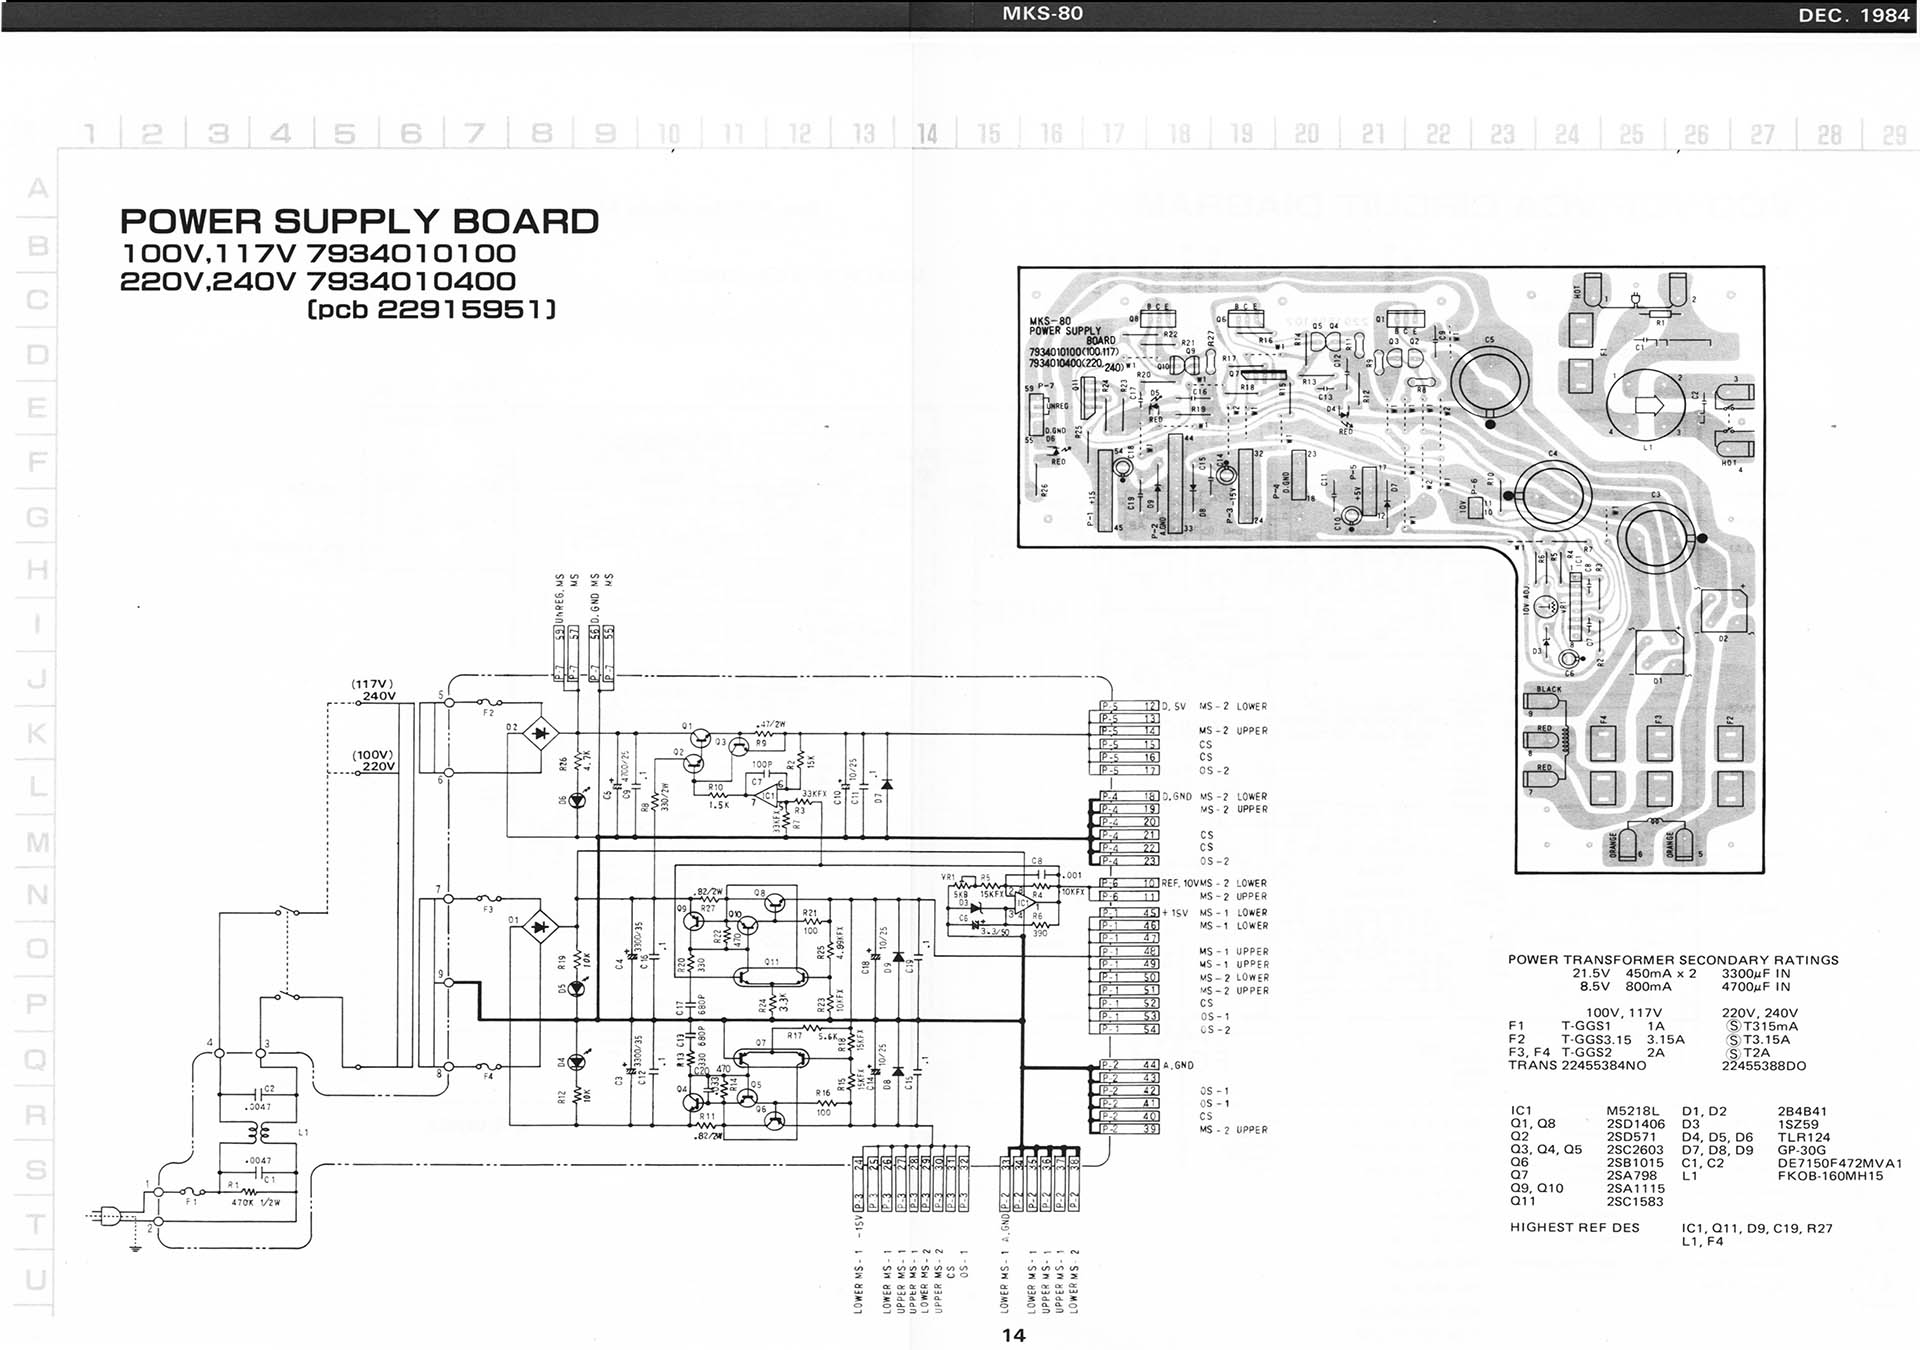 MKS-80 service notes showing the original Roland power supply schematic and board layout